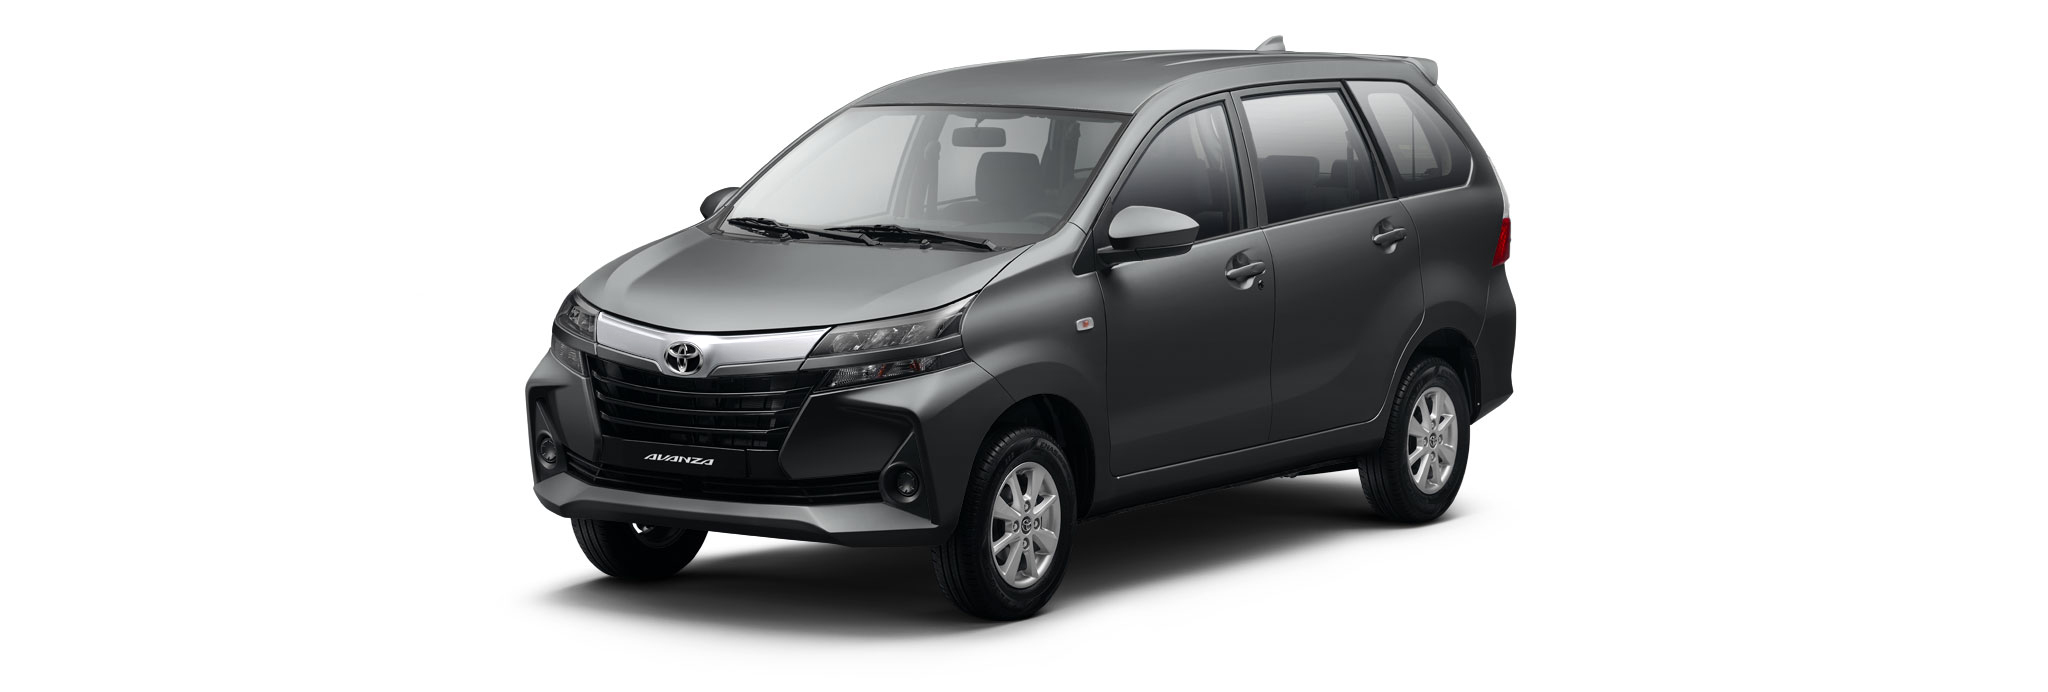 toyota avanza gray metallic 2020